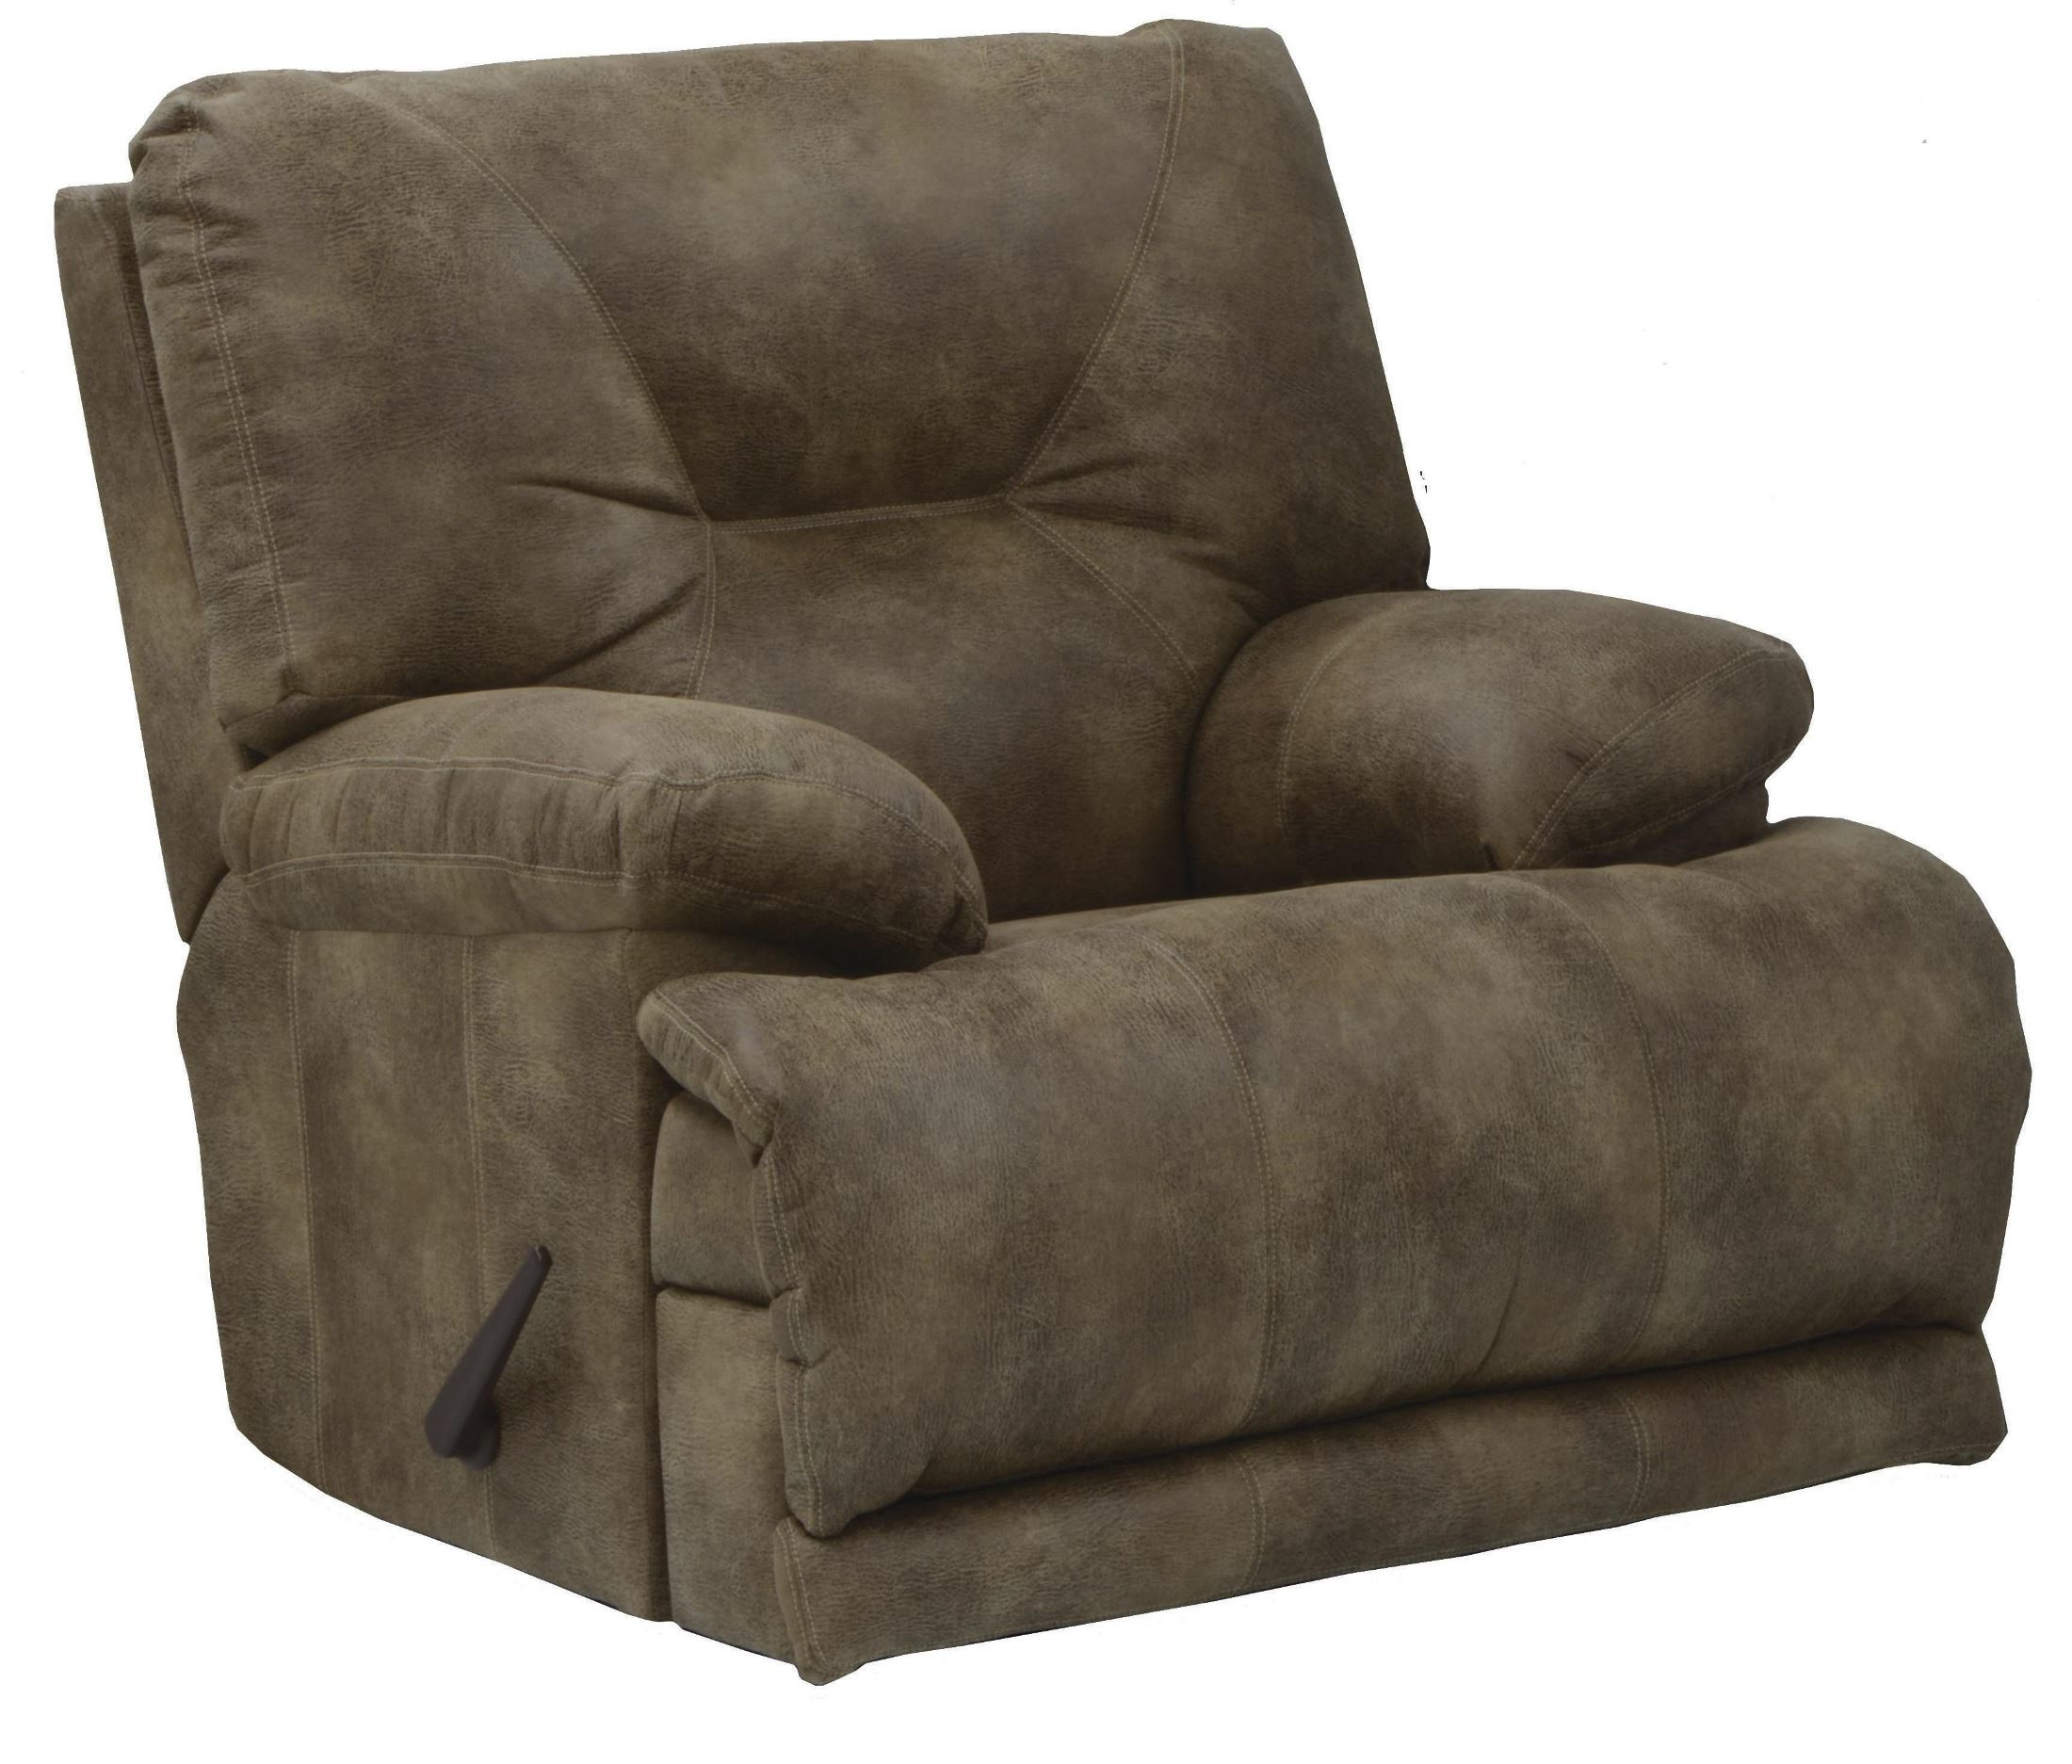 Voyager brandy recliner from catnapper 43807100000000000 for Catnapper cloud nine chaise recliner